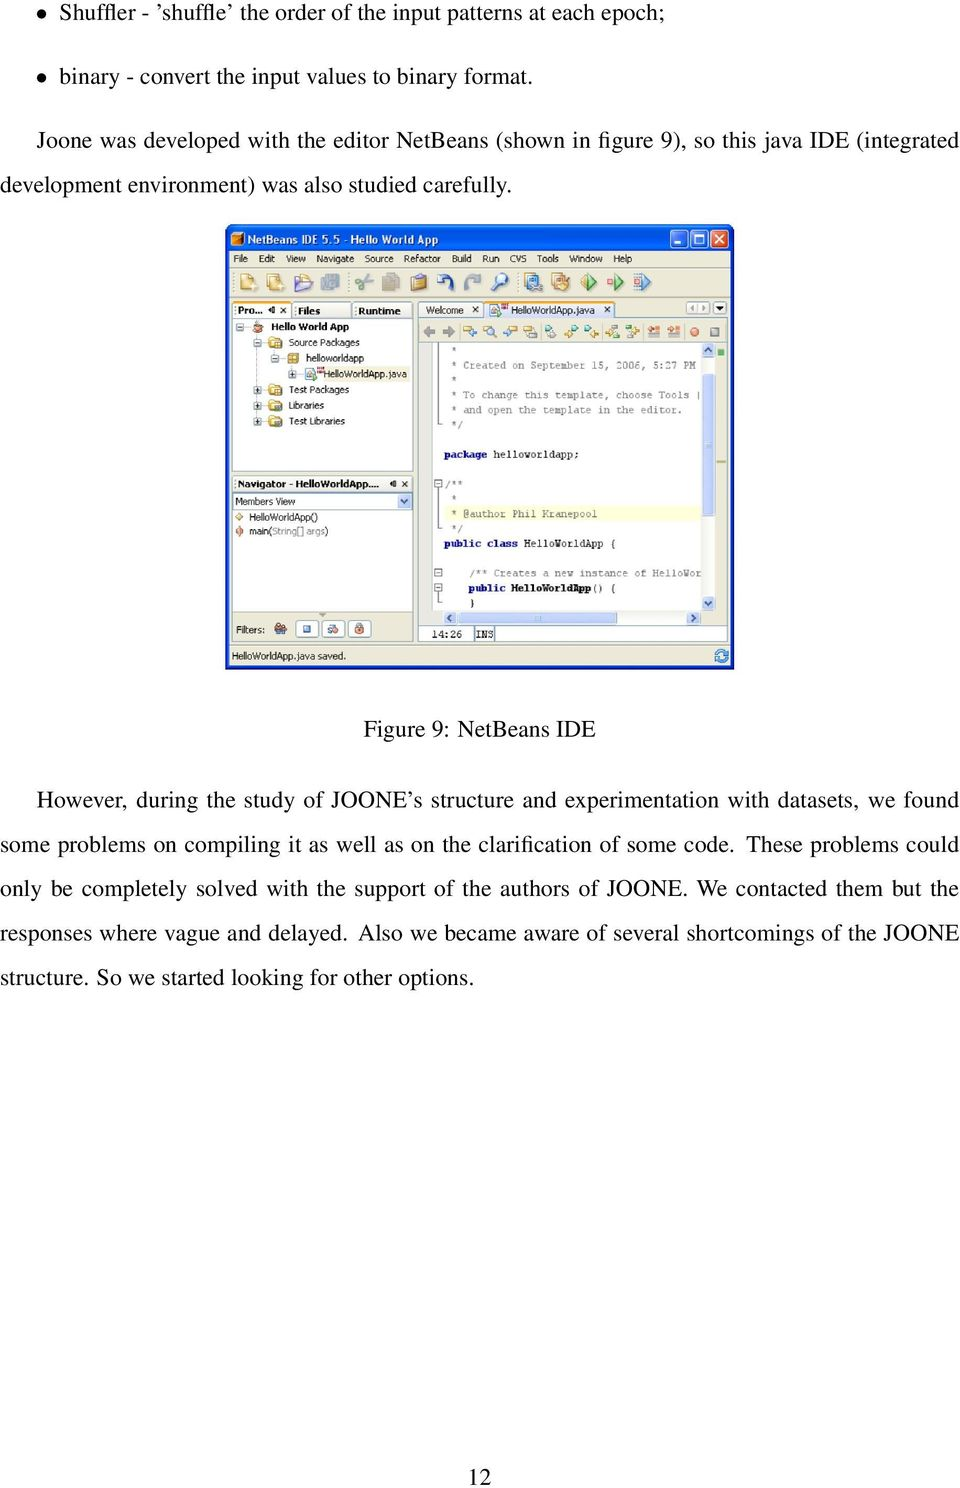 Figure 9: NetBeans IDE However, during the study of JOONE s structure and experimentation with datasets, we found some problems on compiling it as well as on the clarification of